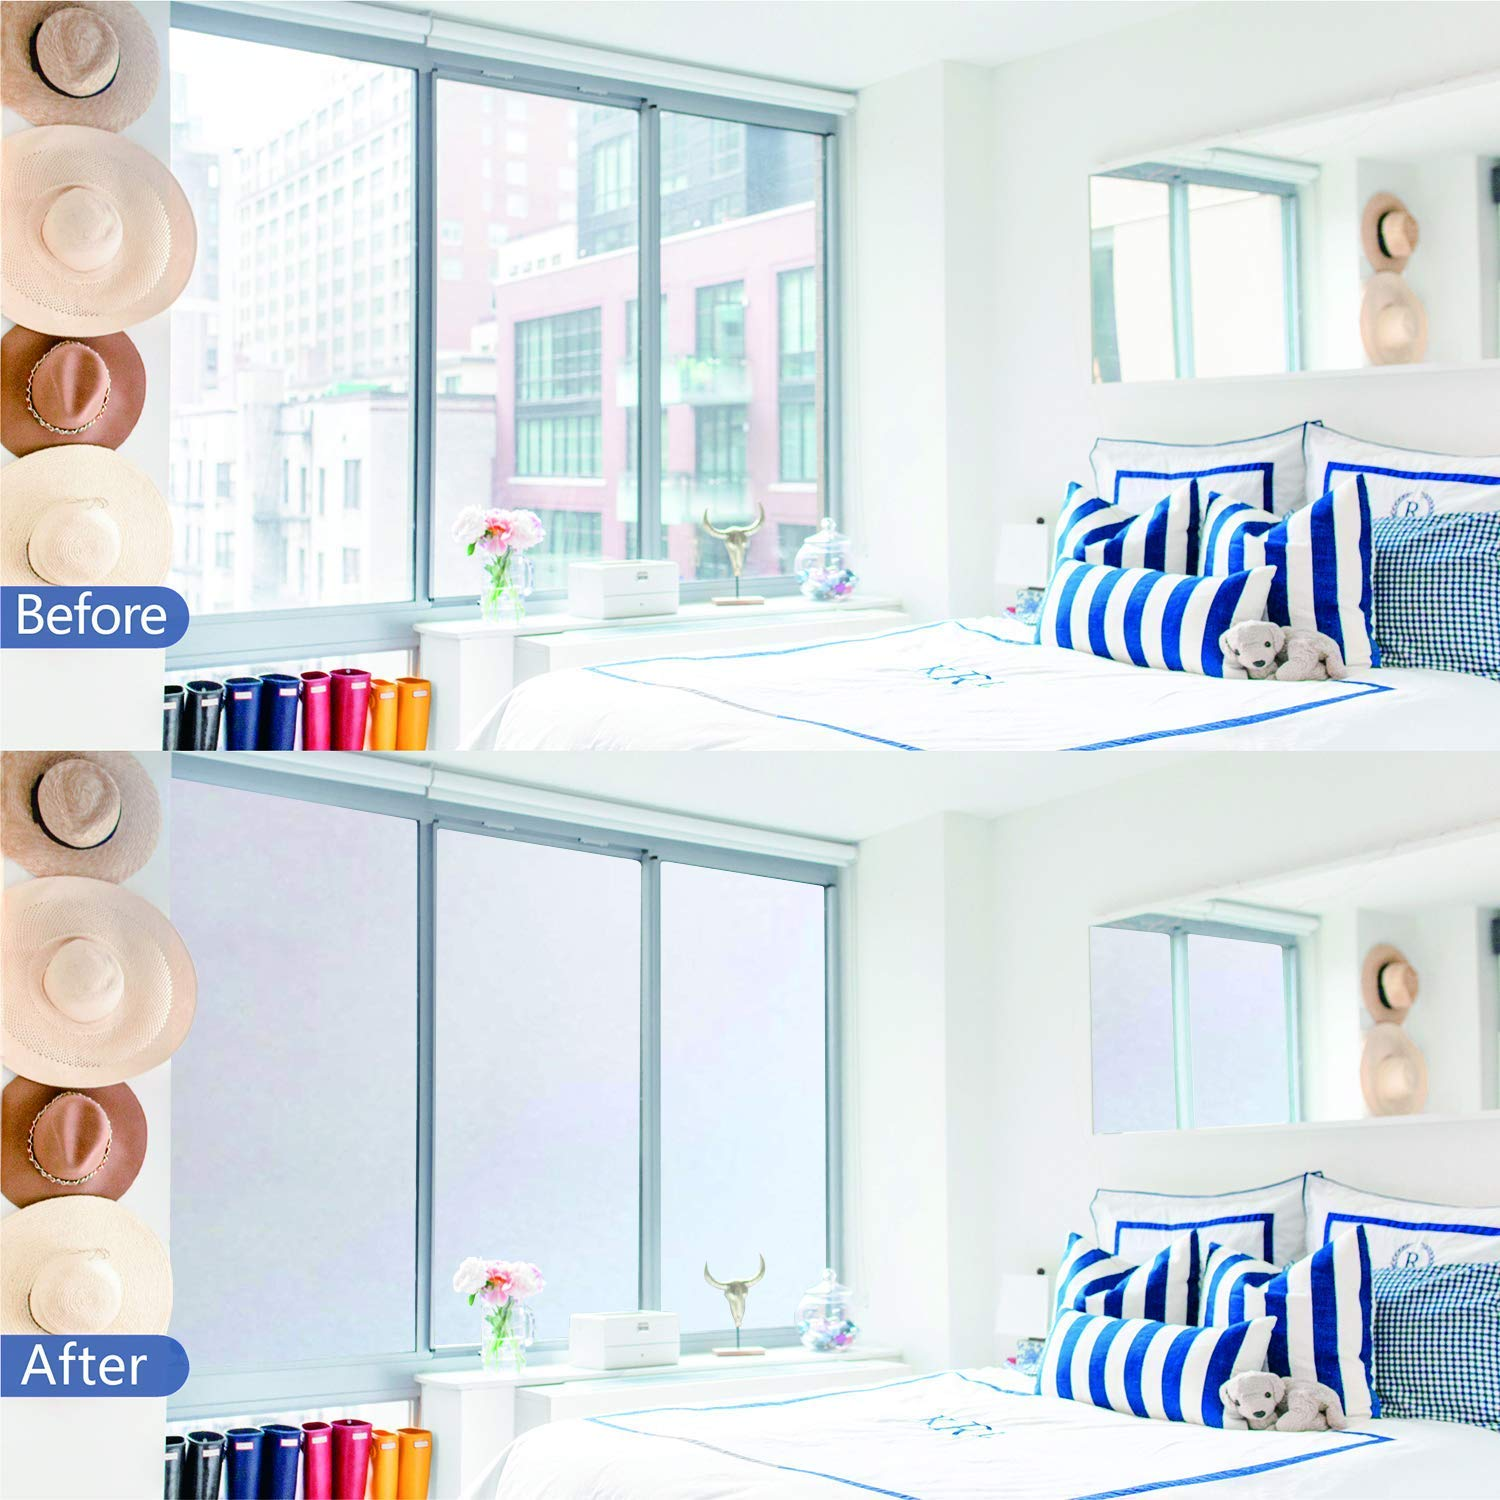 Privacy Window Film Static Cling Frosted Glass Film Anti UV Window Cling No Glue Window Frosting Film Decorative Opaque Glass Window Sticker for Home Privacy Bathroom Privacy 17.5 x 70.8 inches